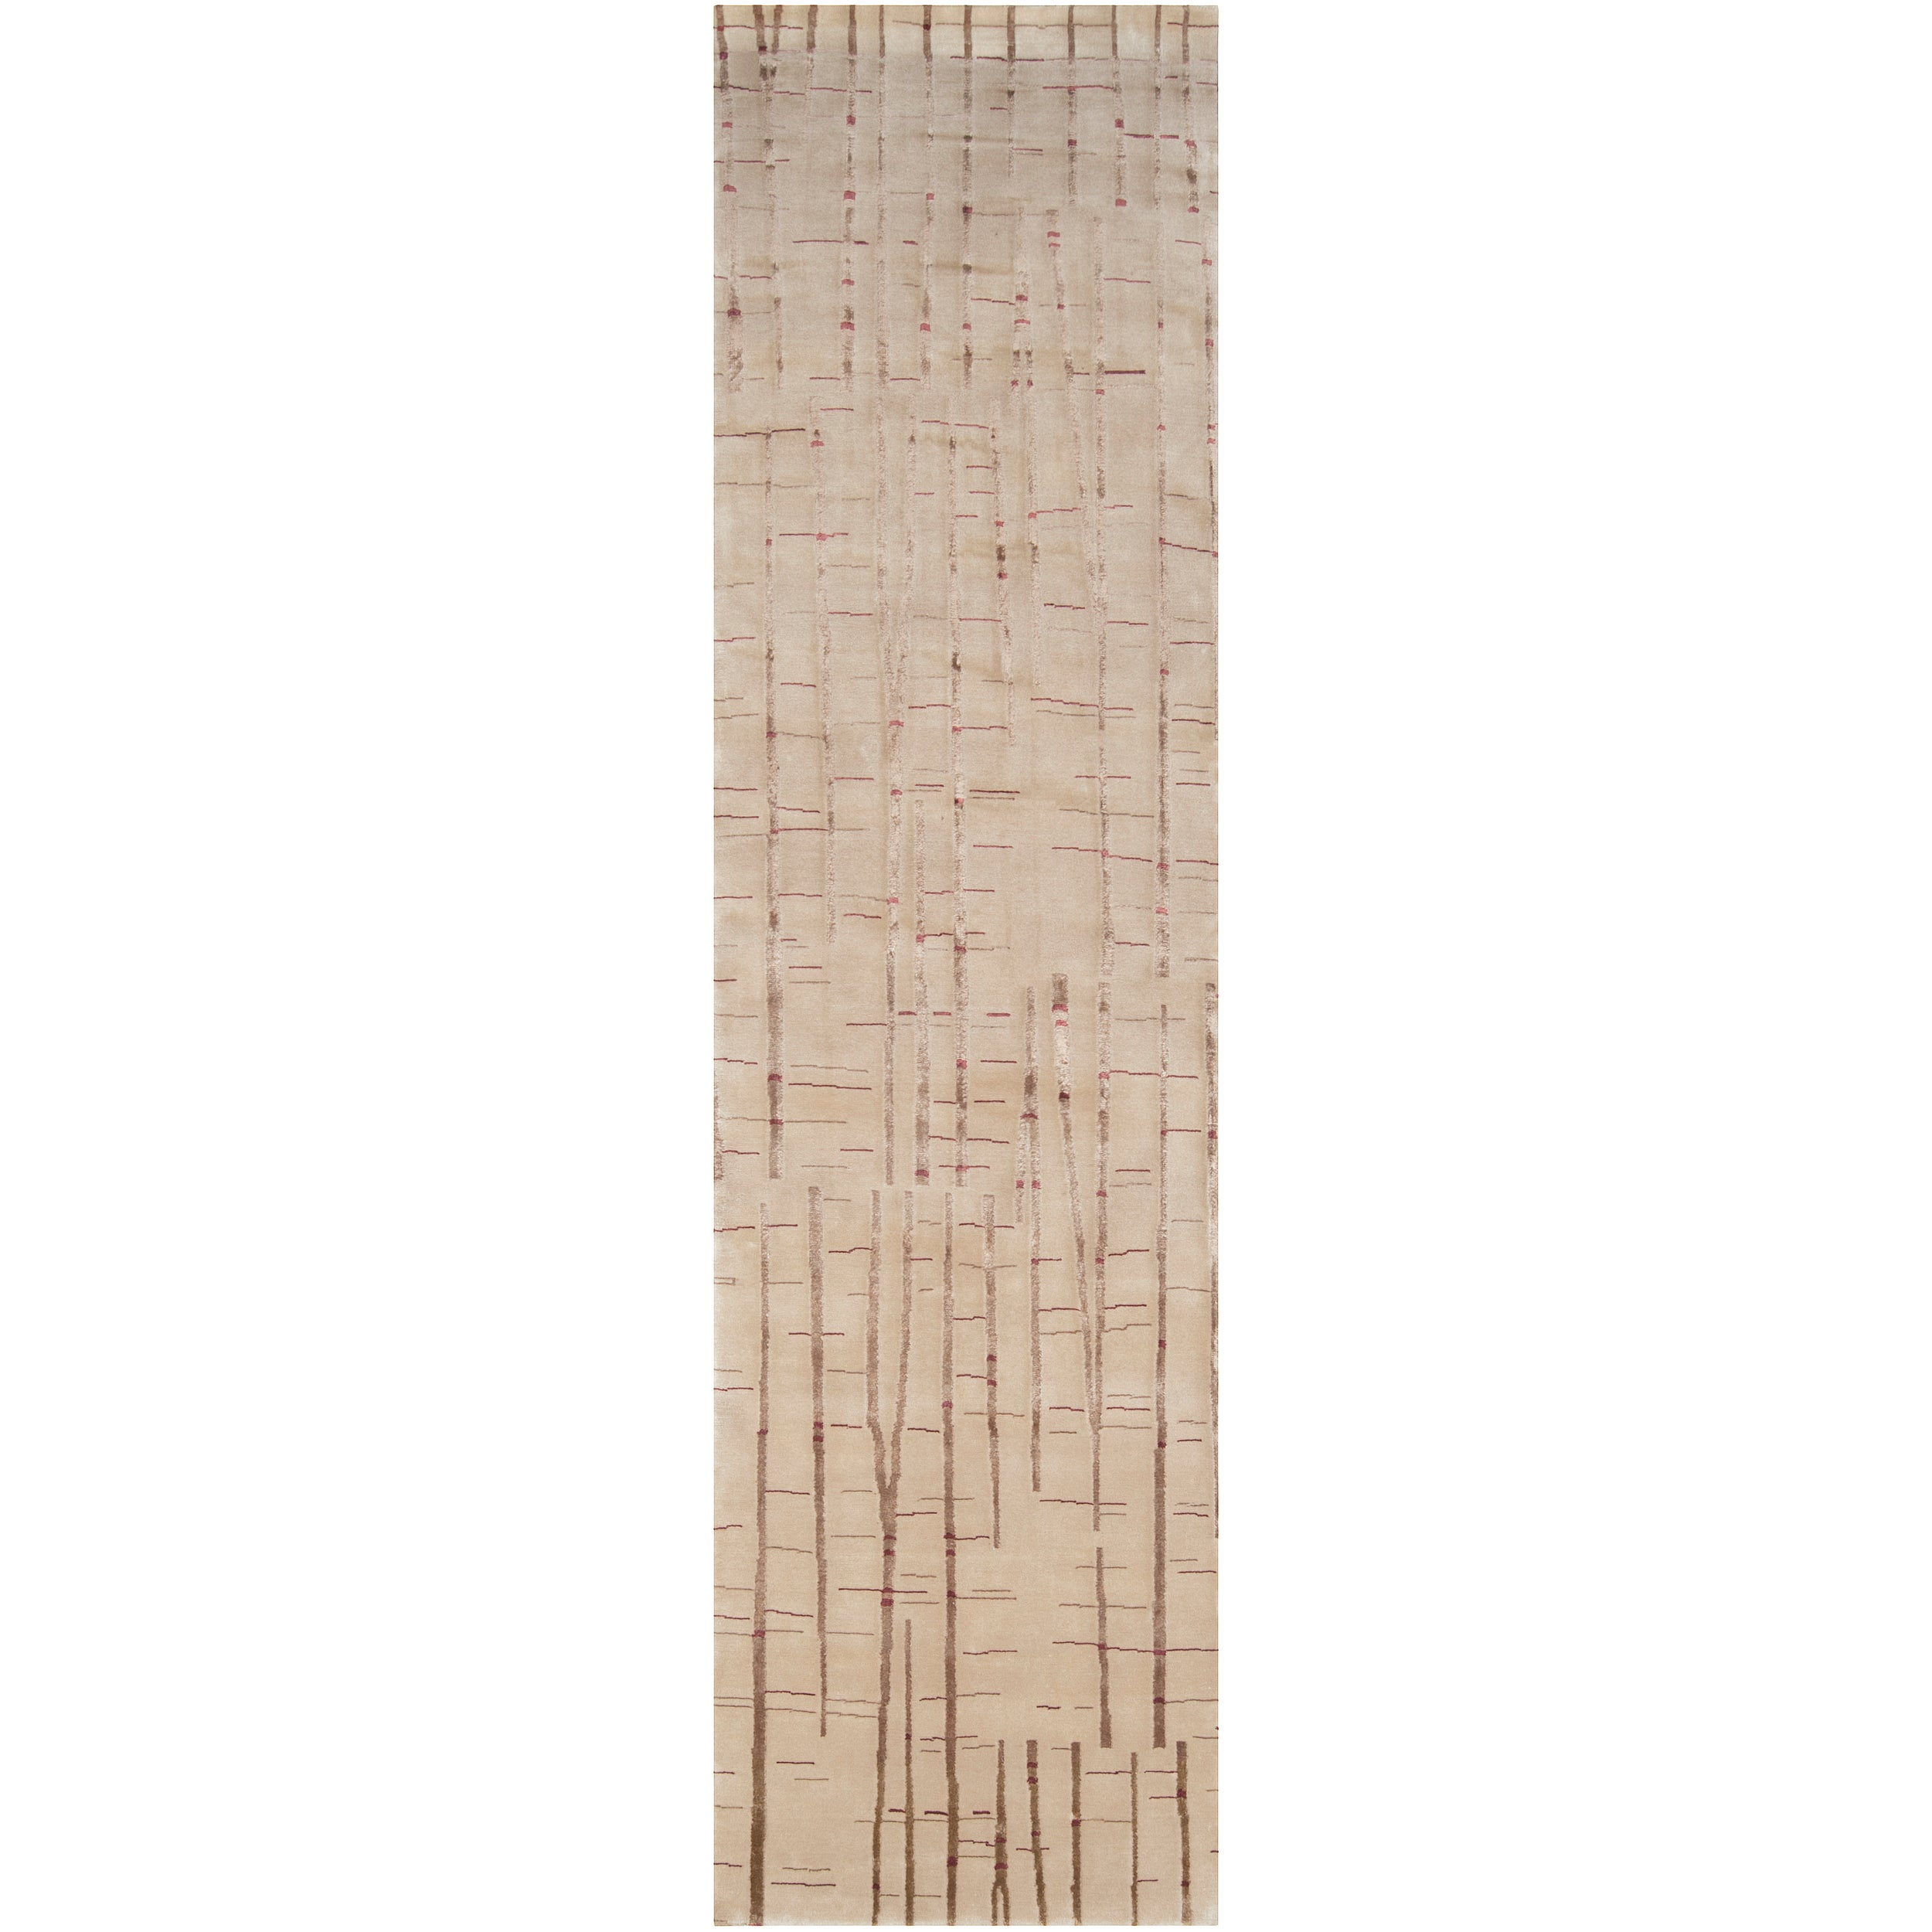 Julie Cohn Hand-knotted Blueridge Tan Abstract Design Wool Rug (2 '6 x 10')